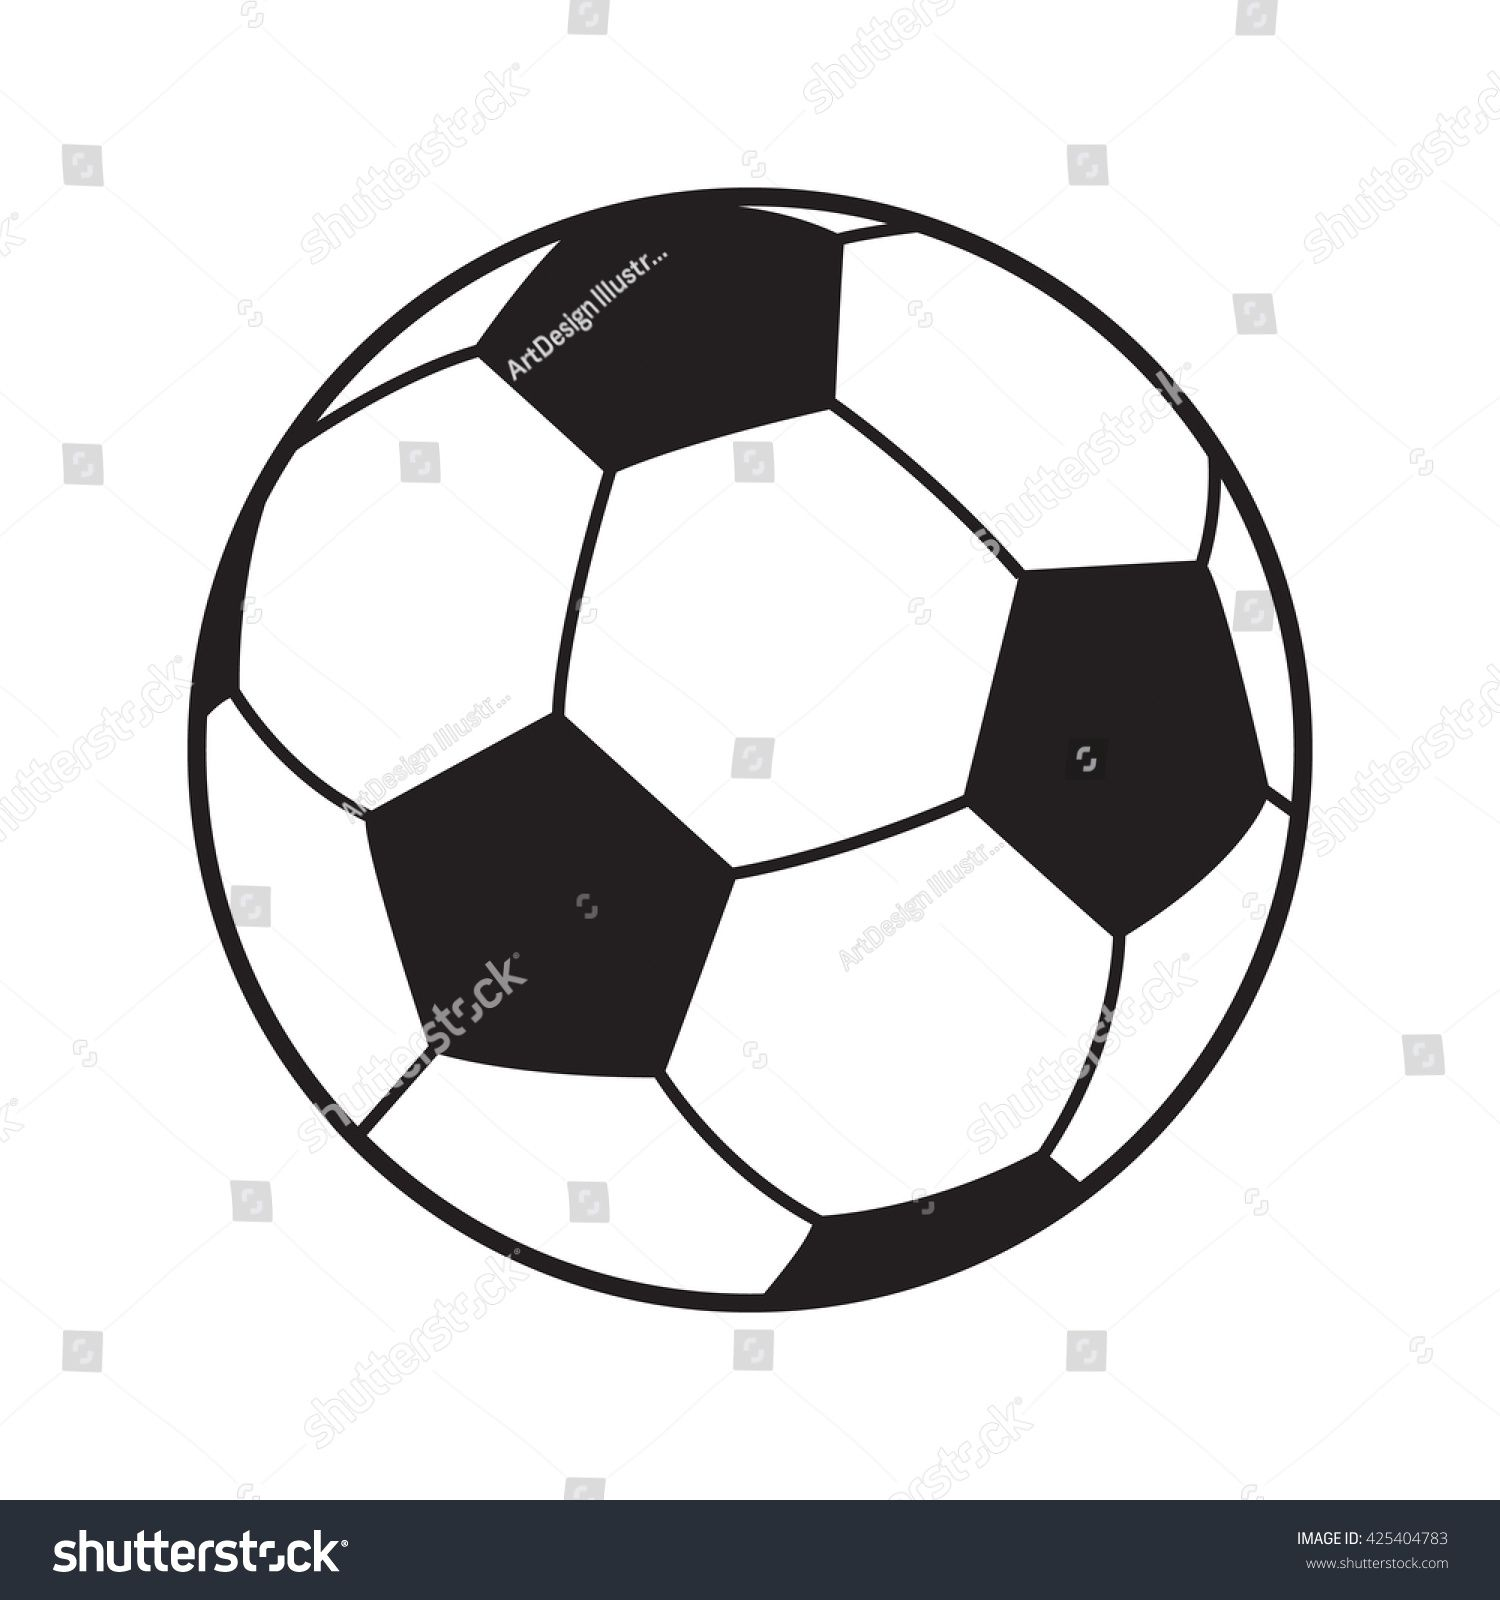 Soccer Ball Icon Soccer Ball Isolated On White Background Logo Vector Illustration Football Sports Symbol Championship Socce Soccer Ball Soccer Vector Logo